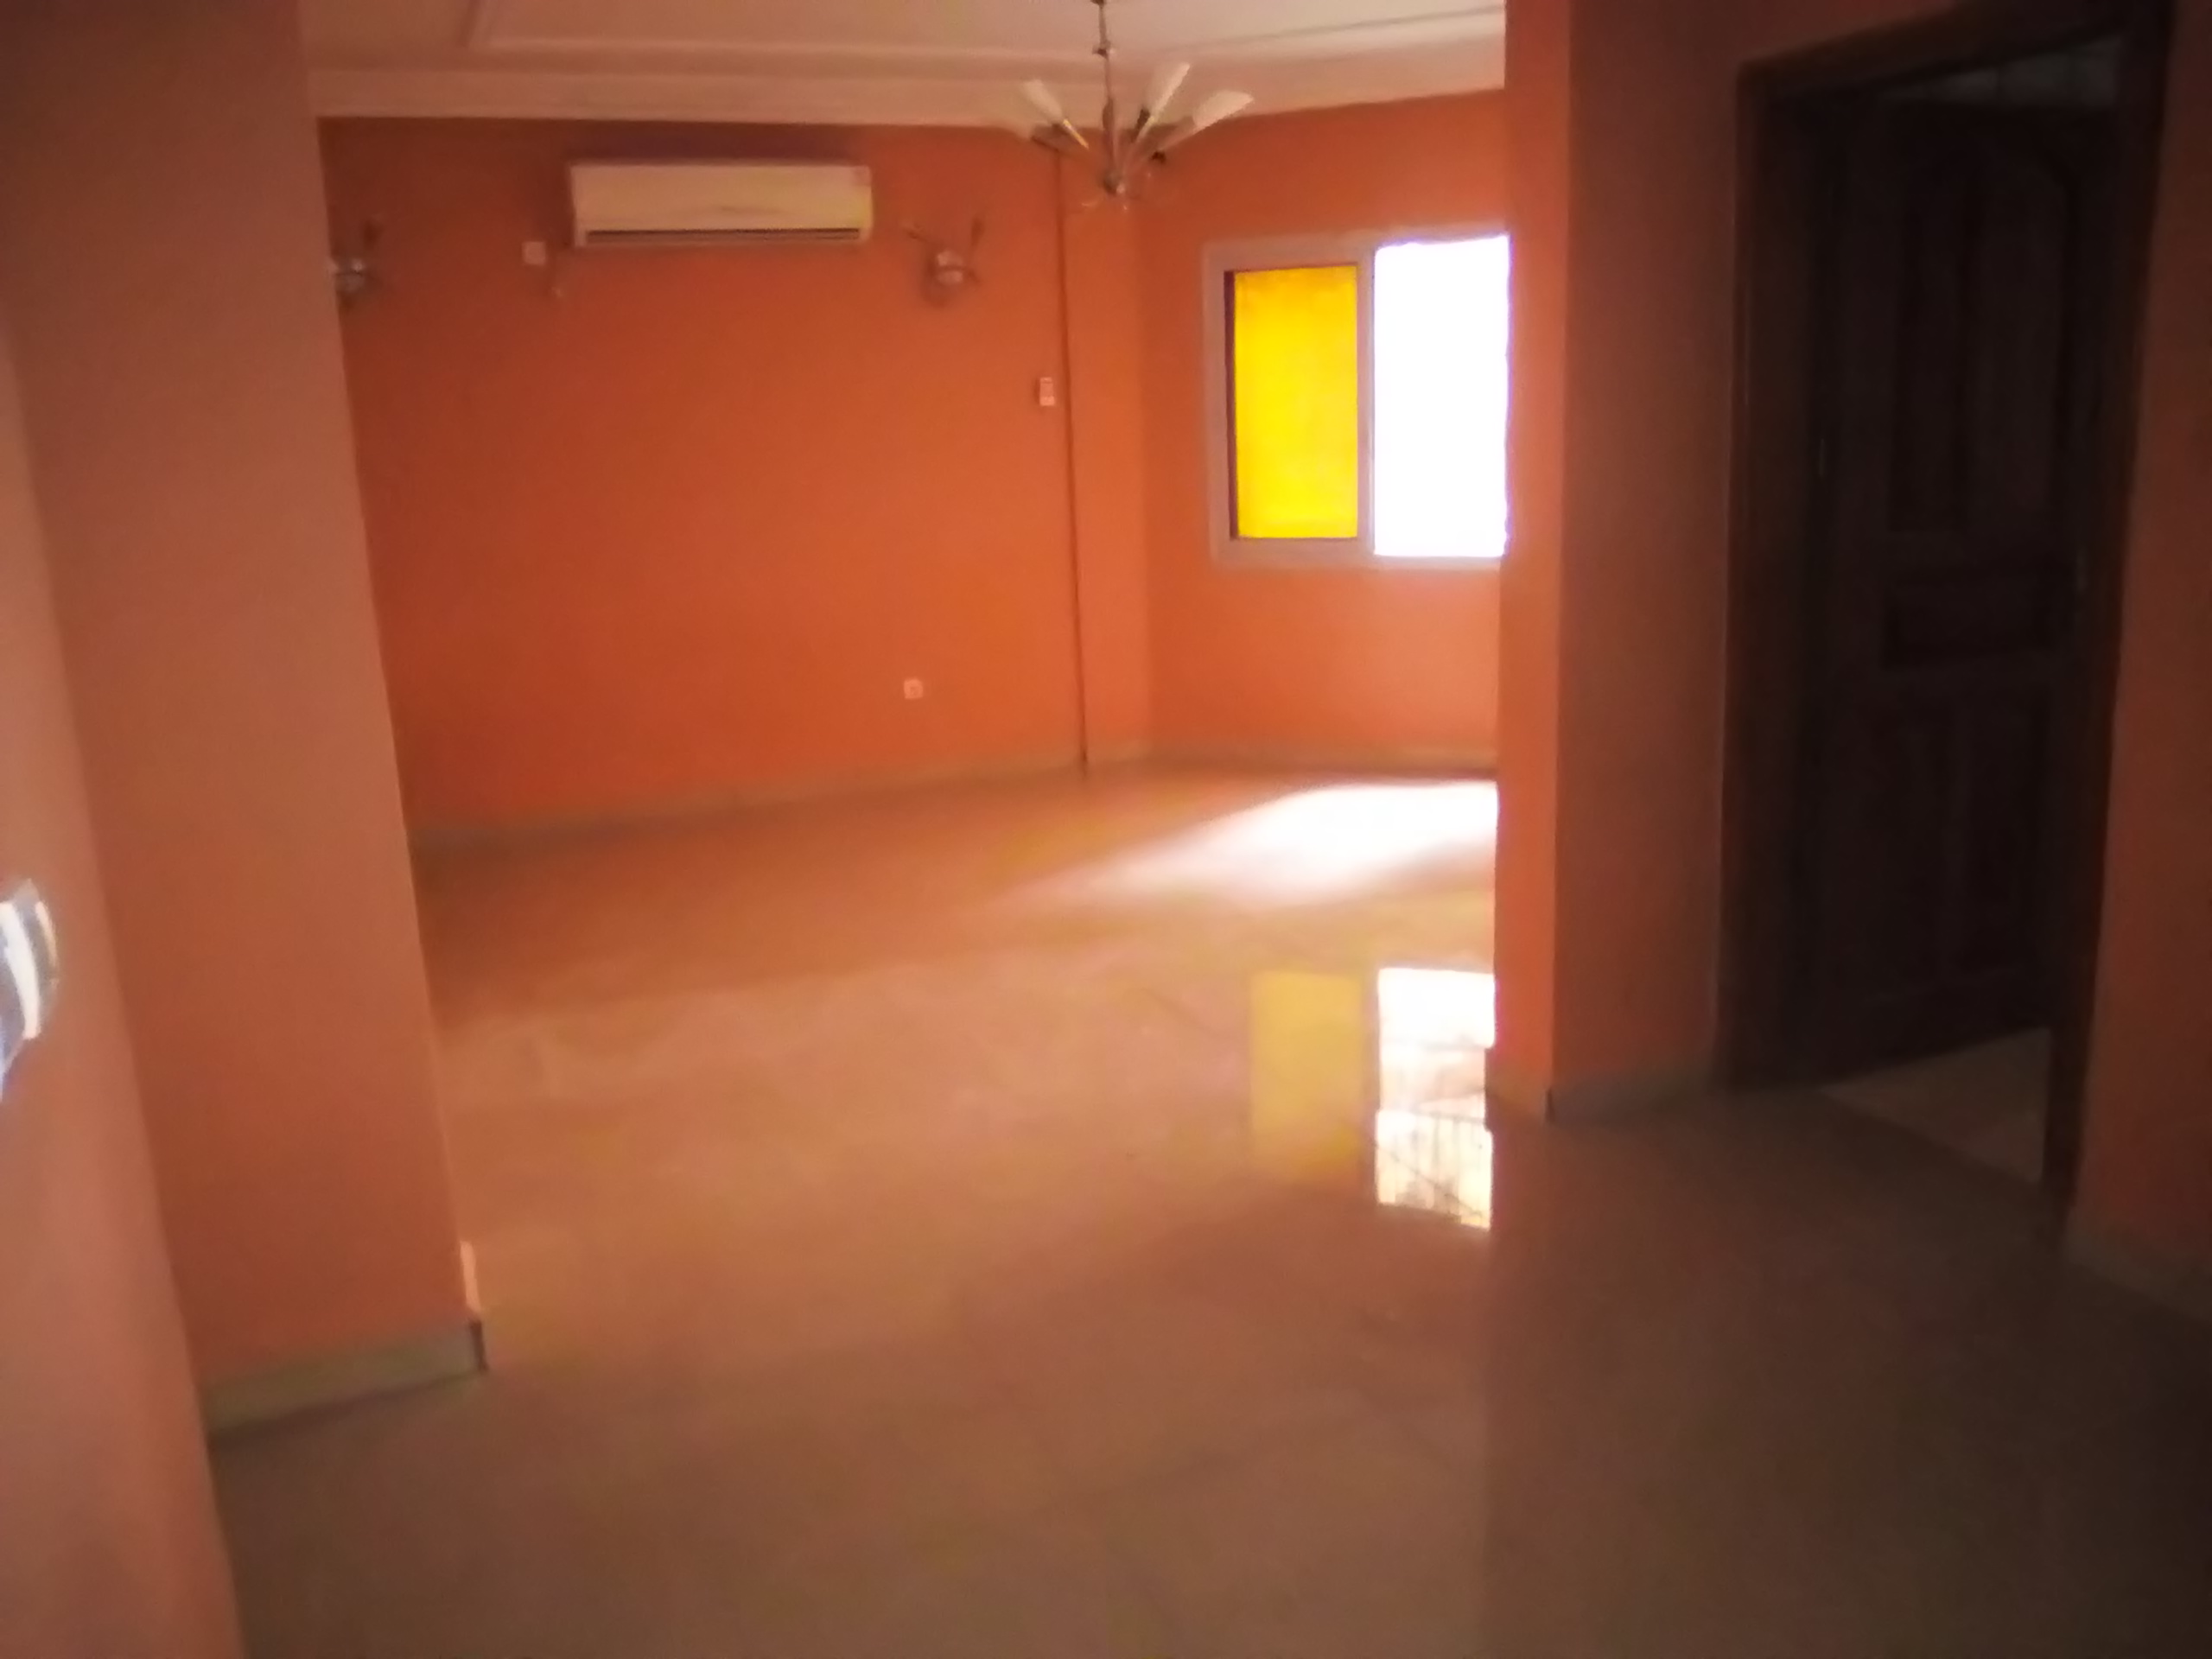 Apartment to rent - Douala, Makepe, PETIT PAYS - 1 living room(s), 2 bedroom(s), 1 bathroom(s) - 135 000 FCFA / month